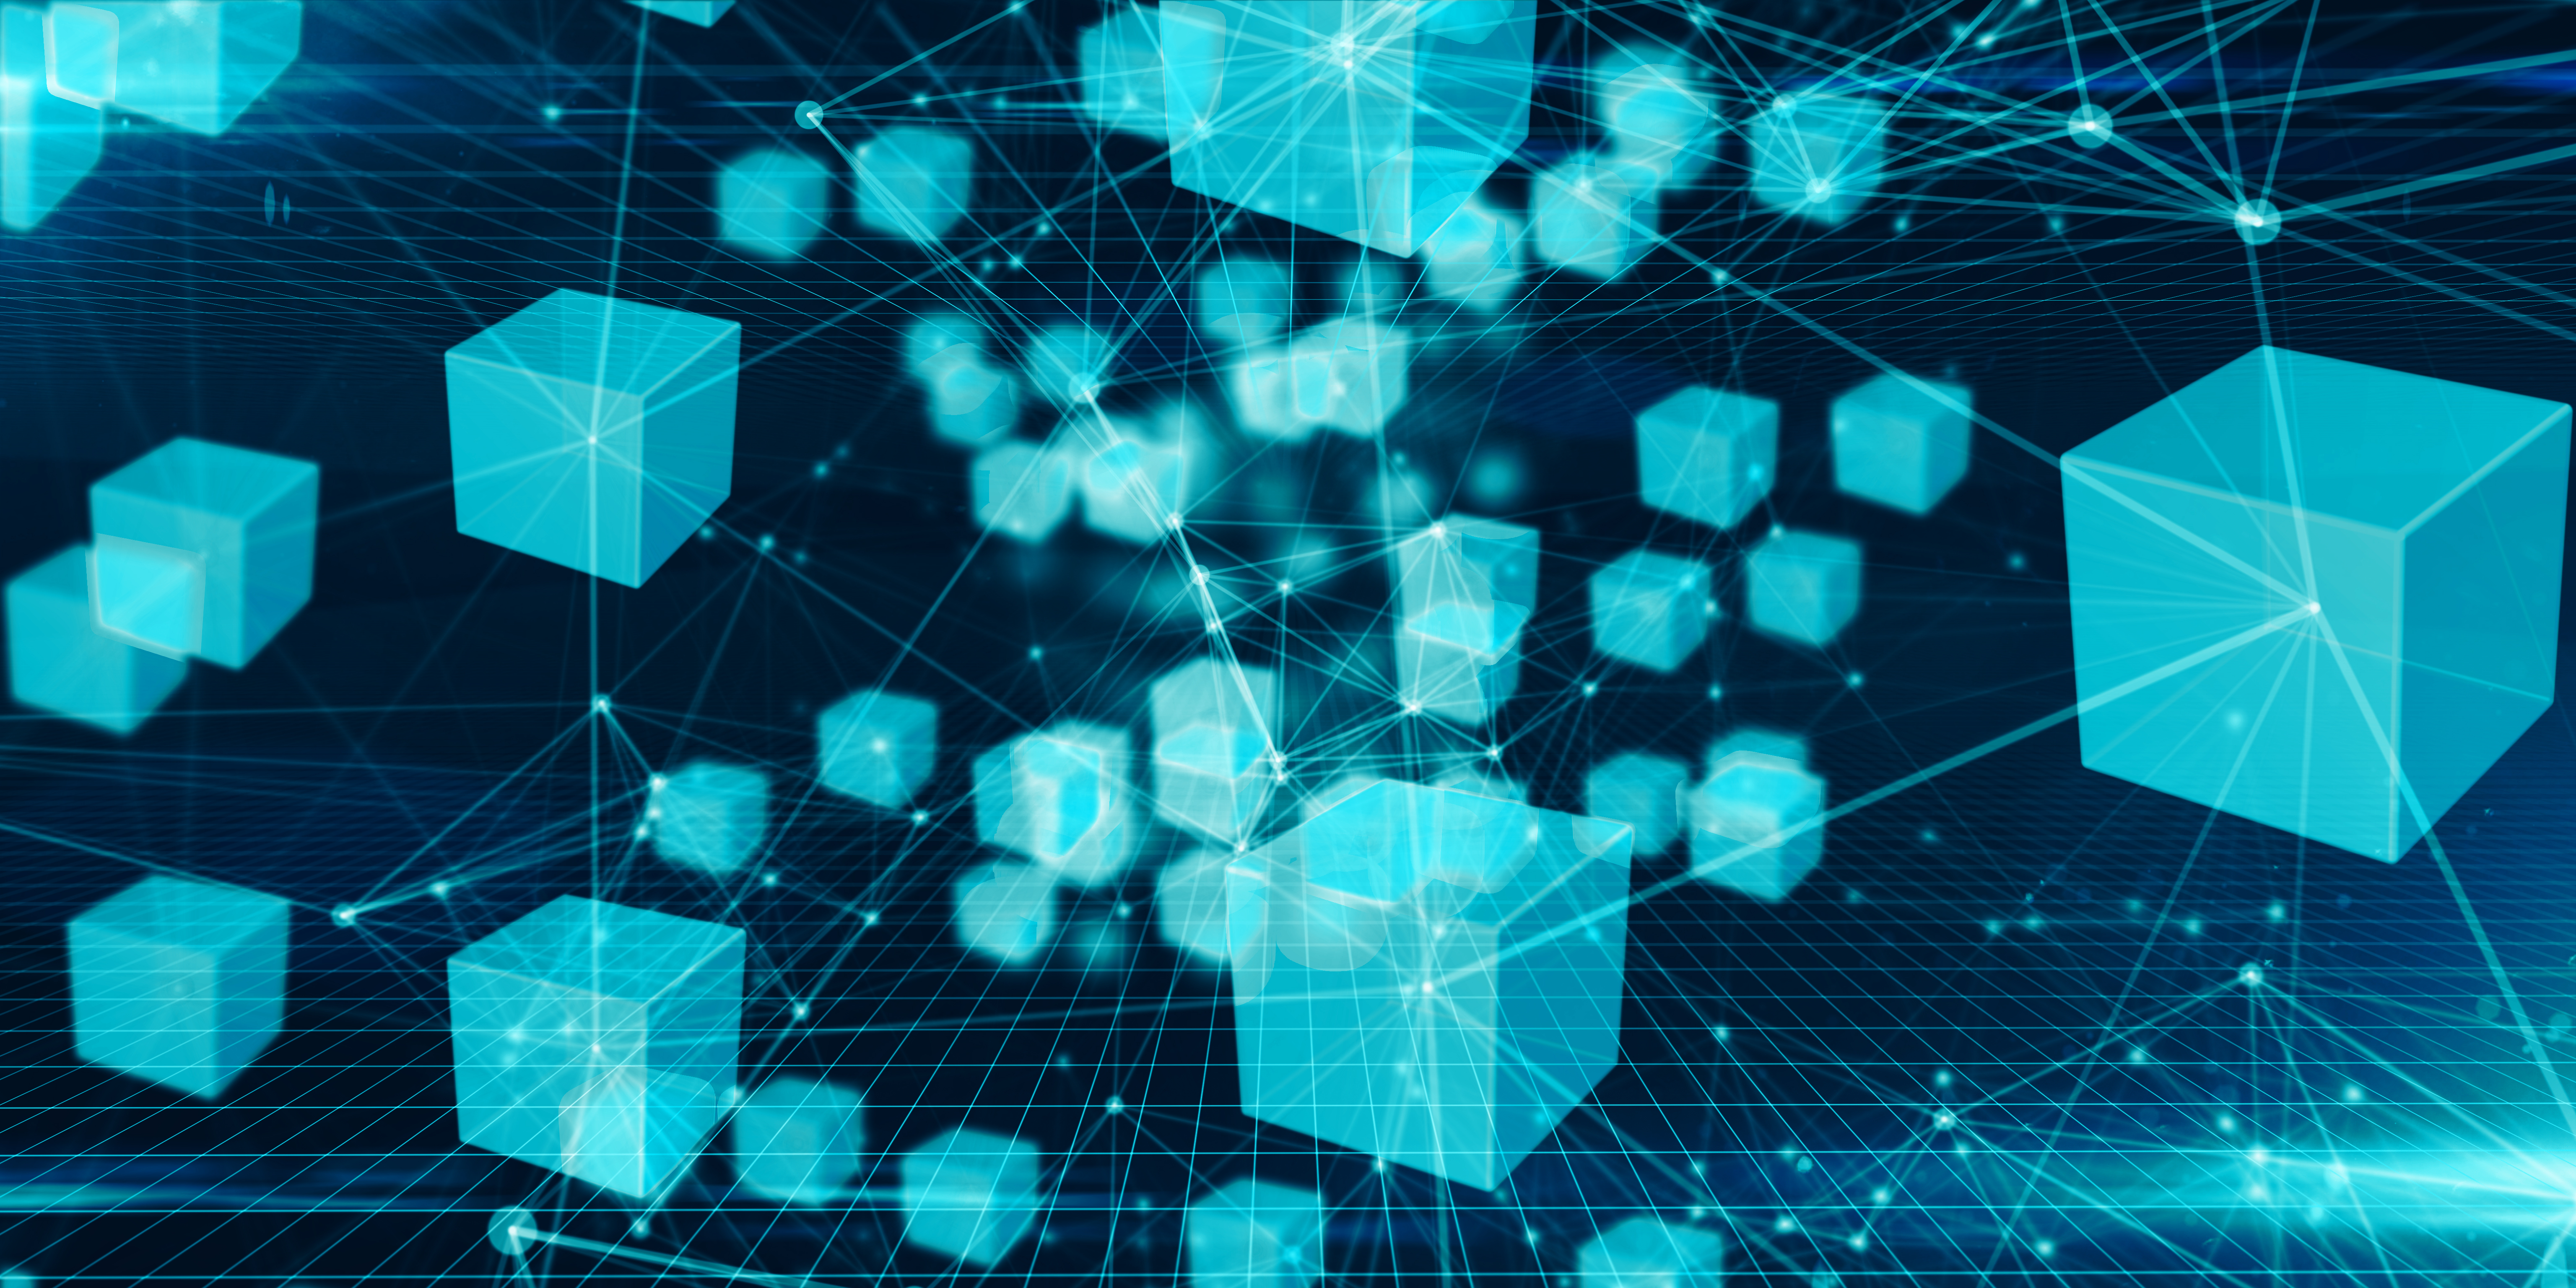 Conceptual graphic wallpaper cloud computing online storage and computer network connectivity for devices over the internet